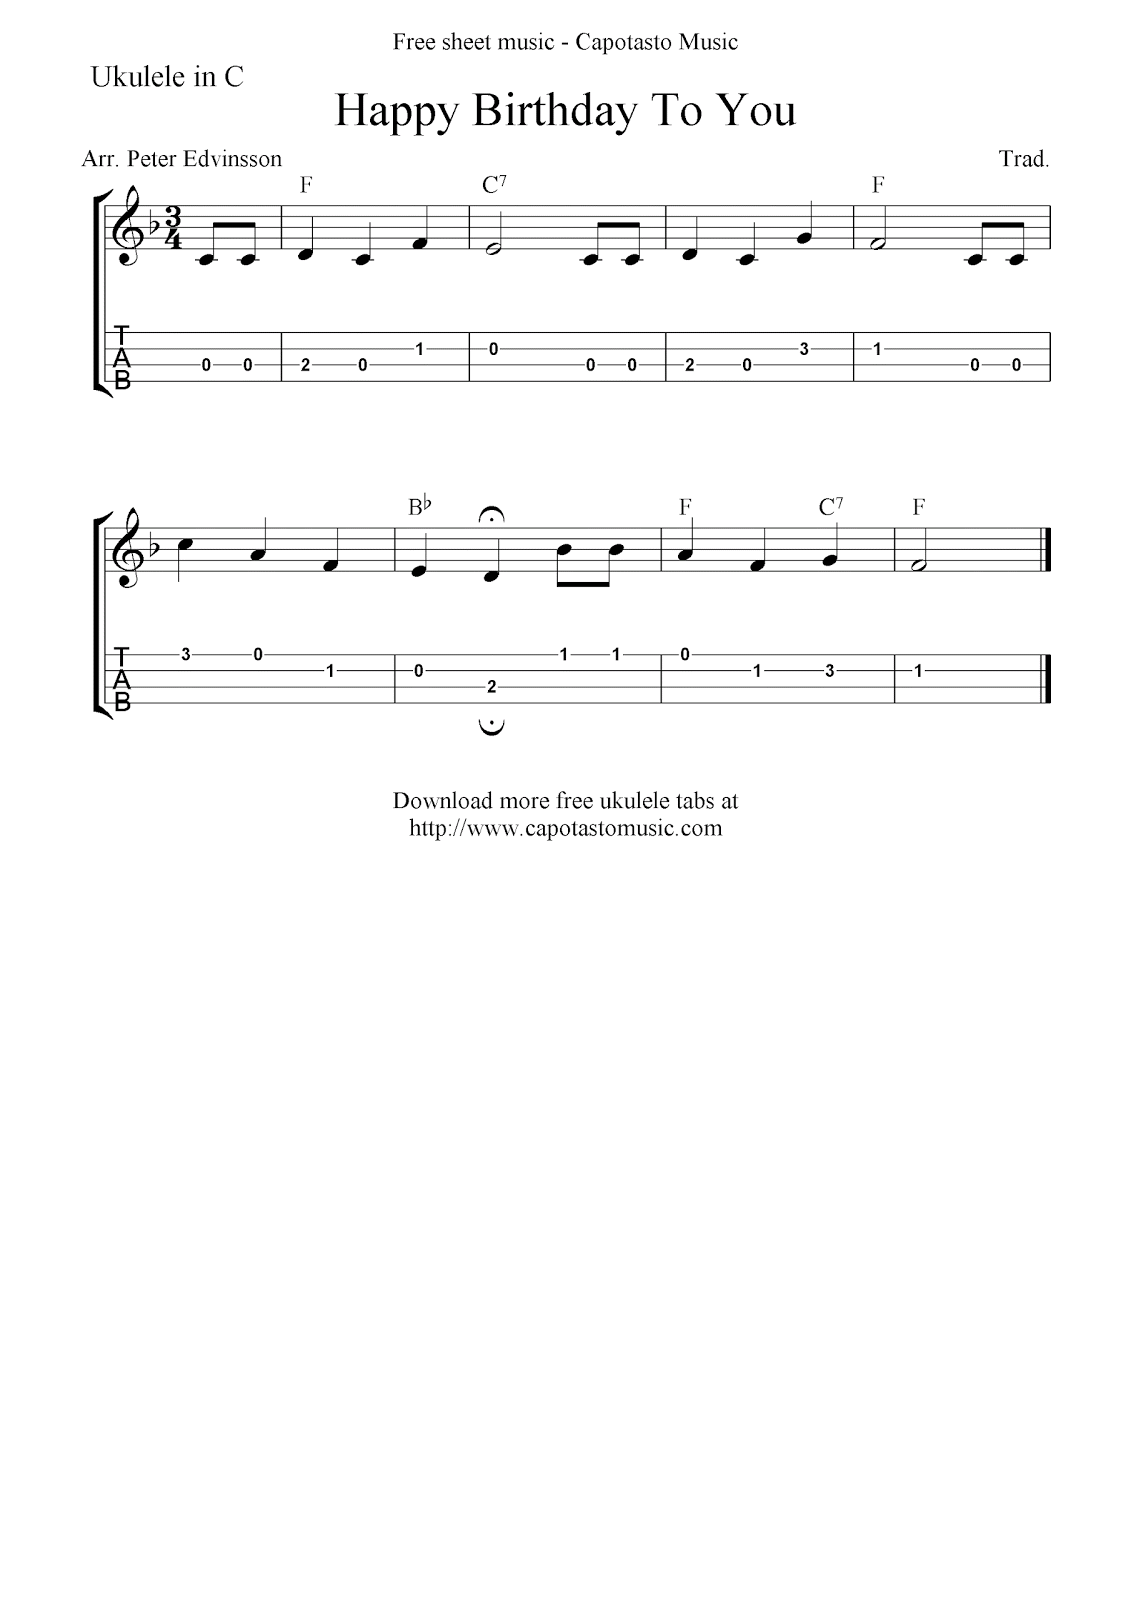 Happy birthday to you free ukulele tab sheet music ukulele happy birthday to you free ukulele tab sheet music hexwebz Image collections